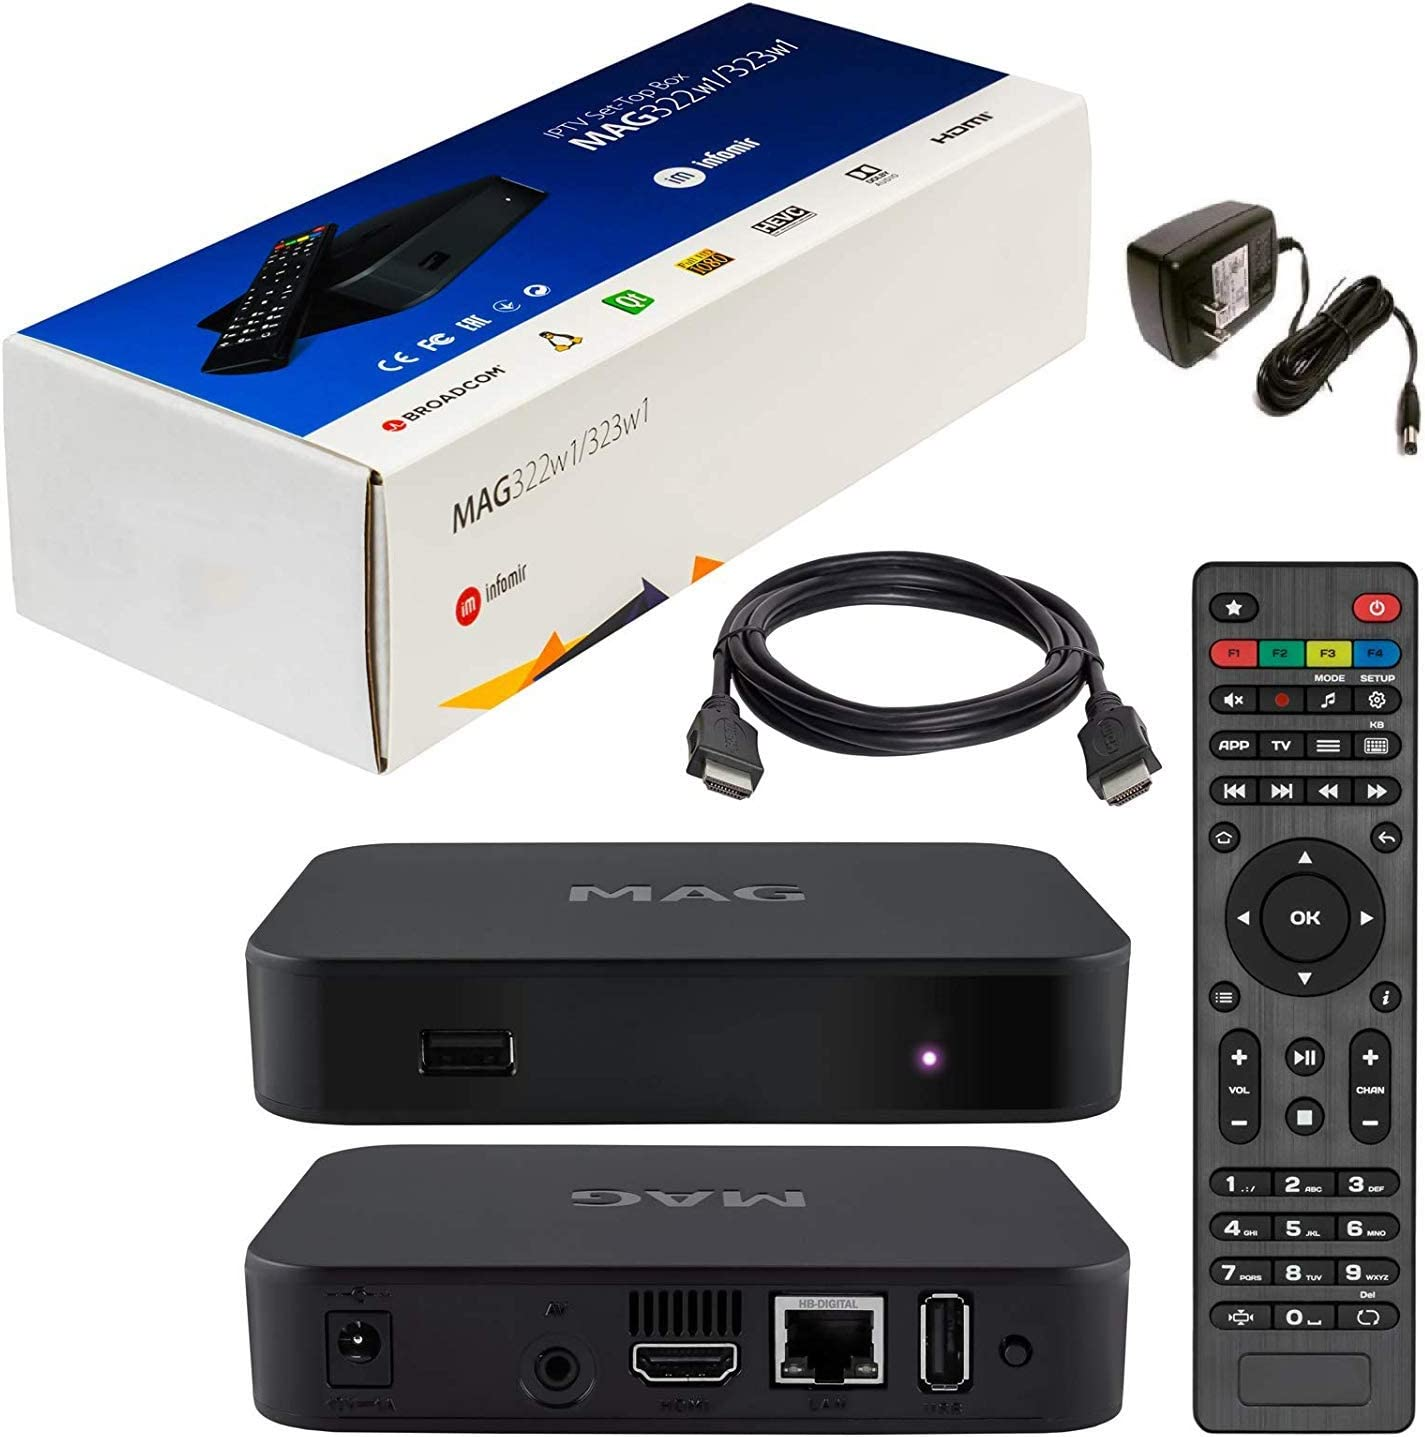 Original MAG 322w1 by inofmir + US power adapter + HDMI cable + Remote Control